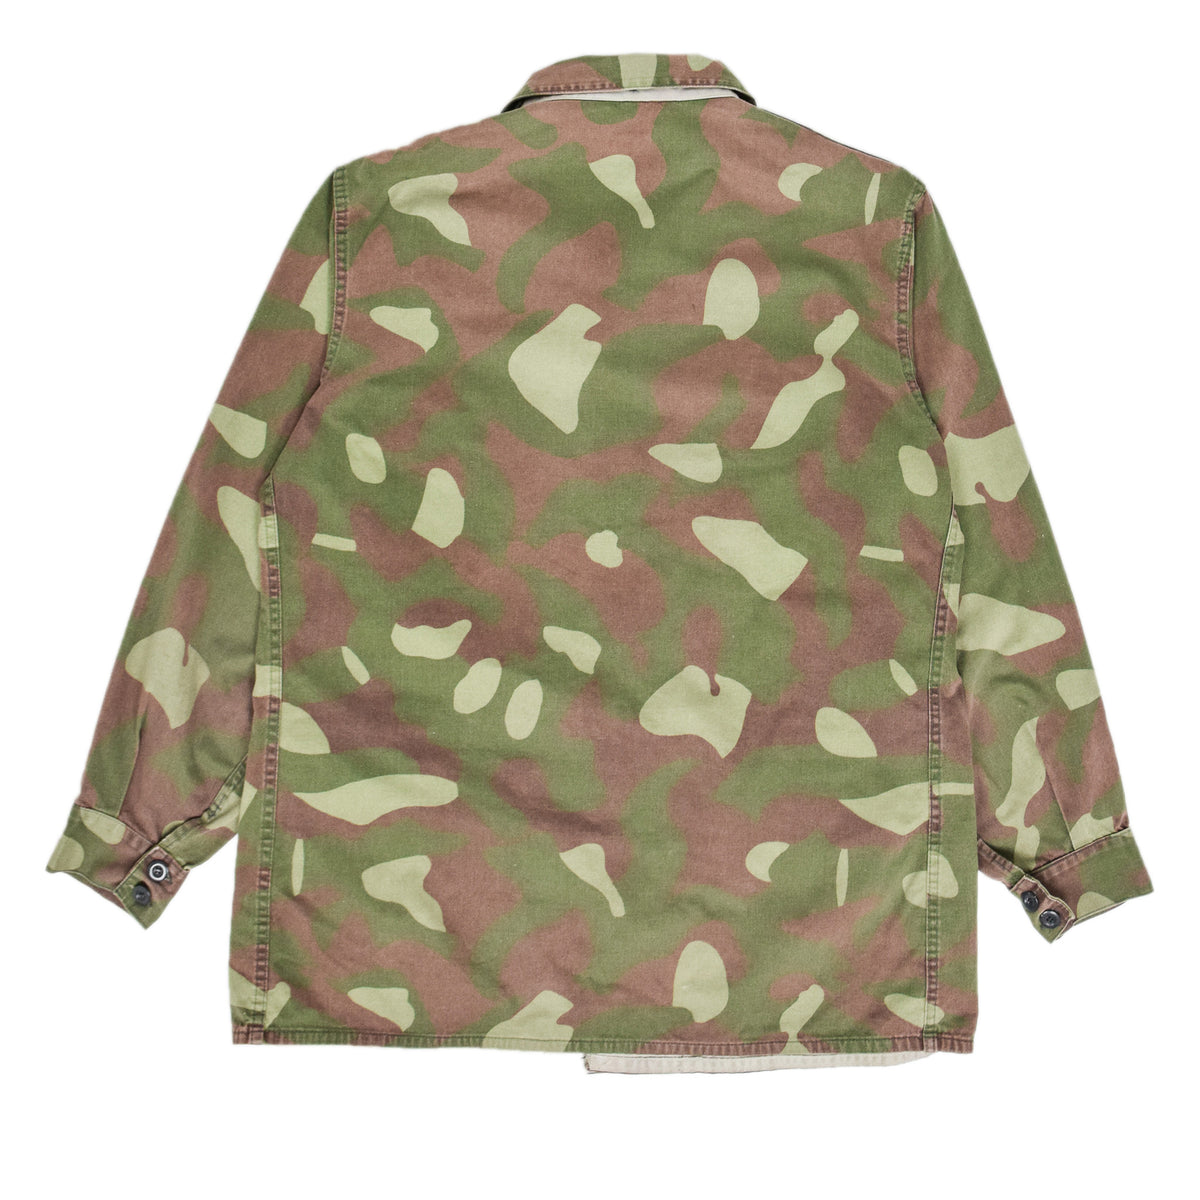 Vintage 80s Military Finnish Army Green Camo Mountain Field Jacket XL back